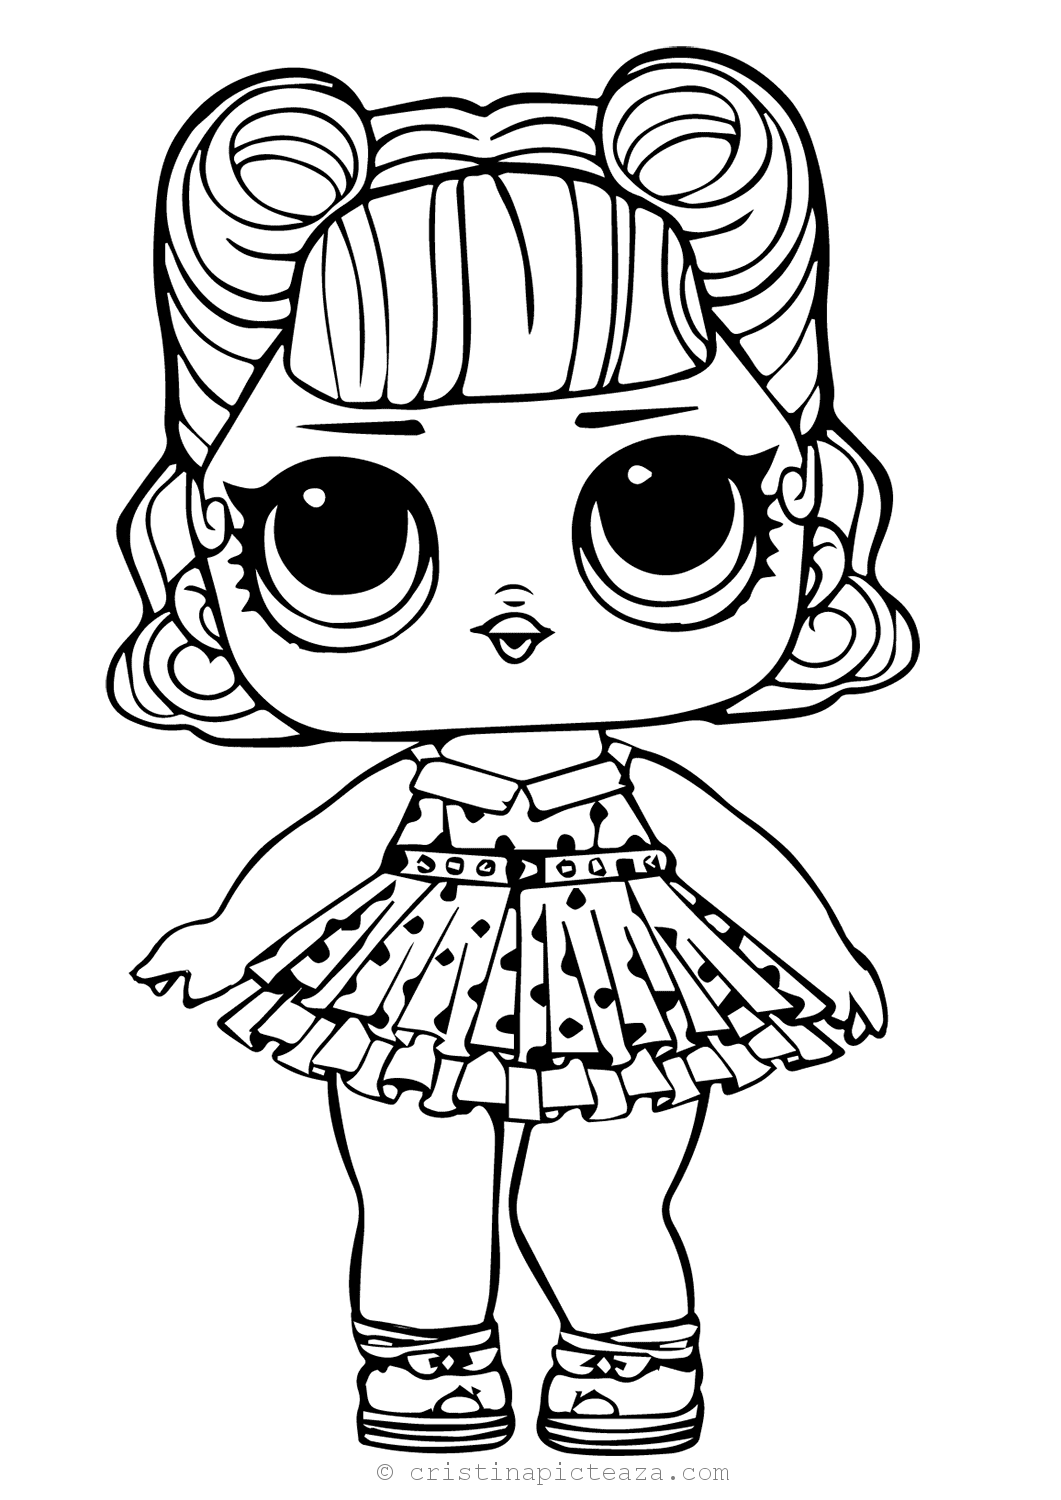 coloring picture lol 40 free printable lol surprise dolls coloring pages coloring picture lol